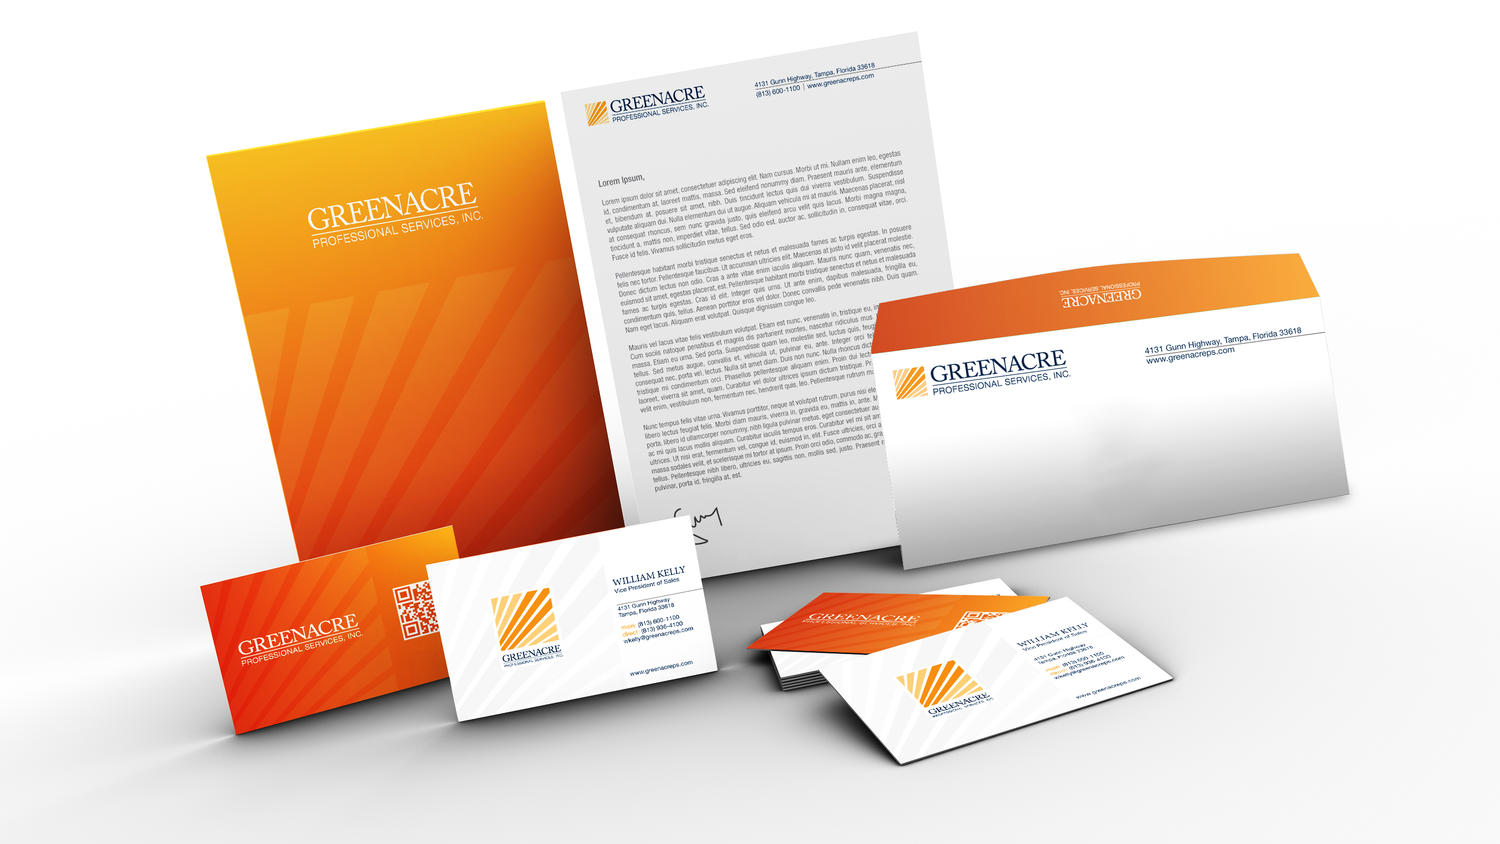 Corporate Stationery Design by GenesisDesign - 22506